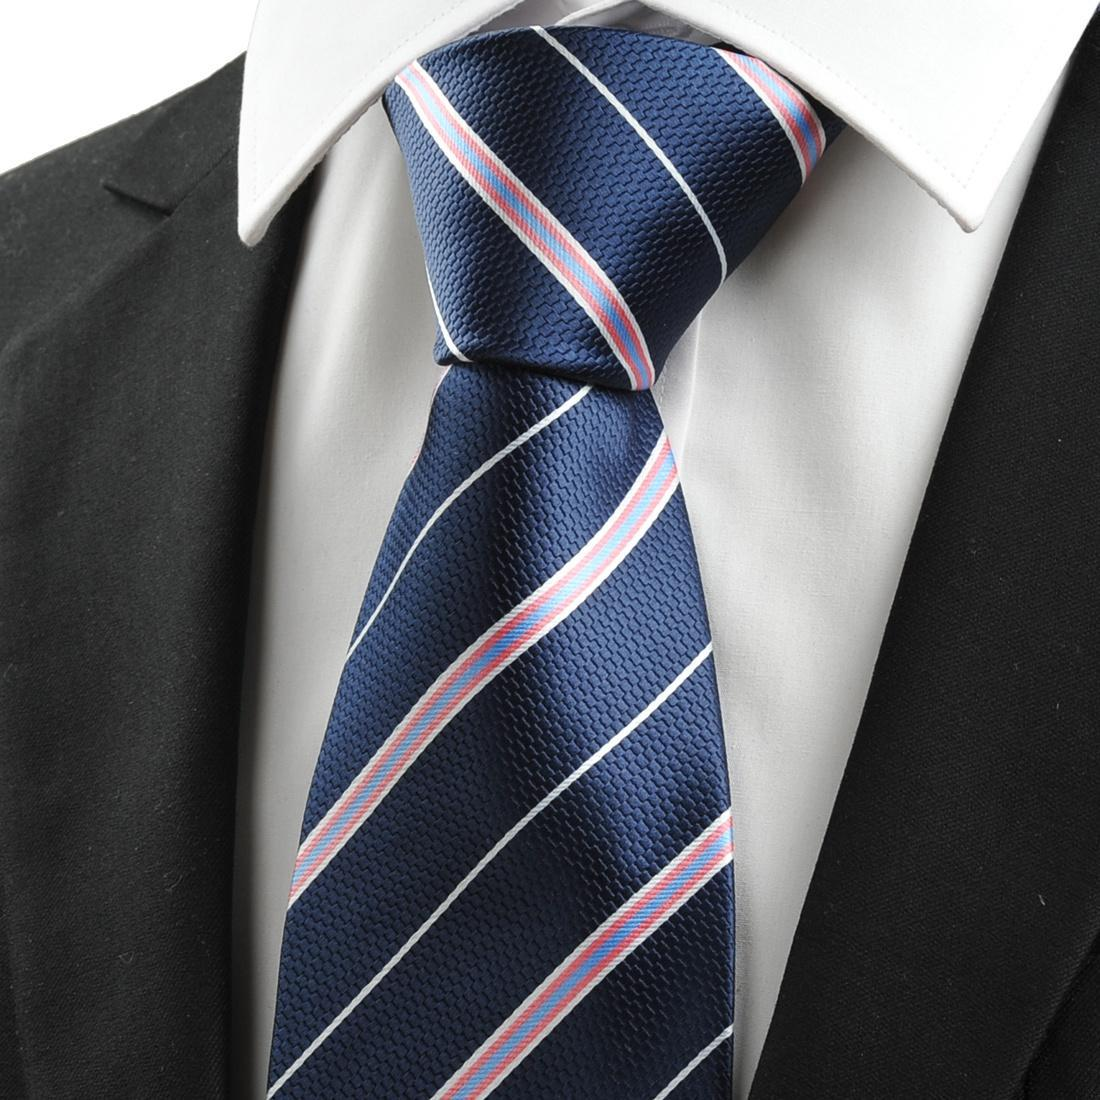 Shop for men's Clearance Ties online at mediacrucialxa.cf Browse the latest styles for men from Jos. A Bank. FREE shipping on orders over $